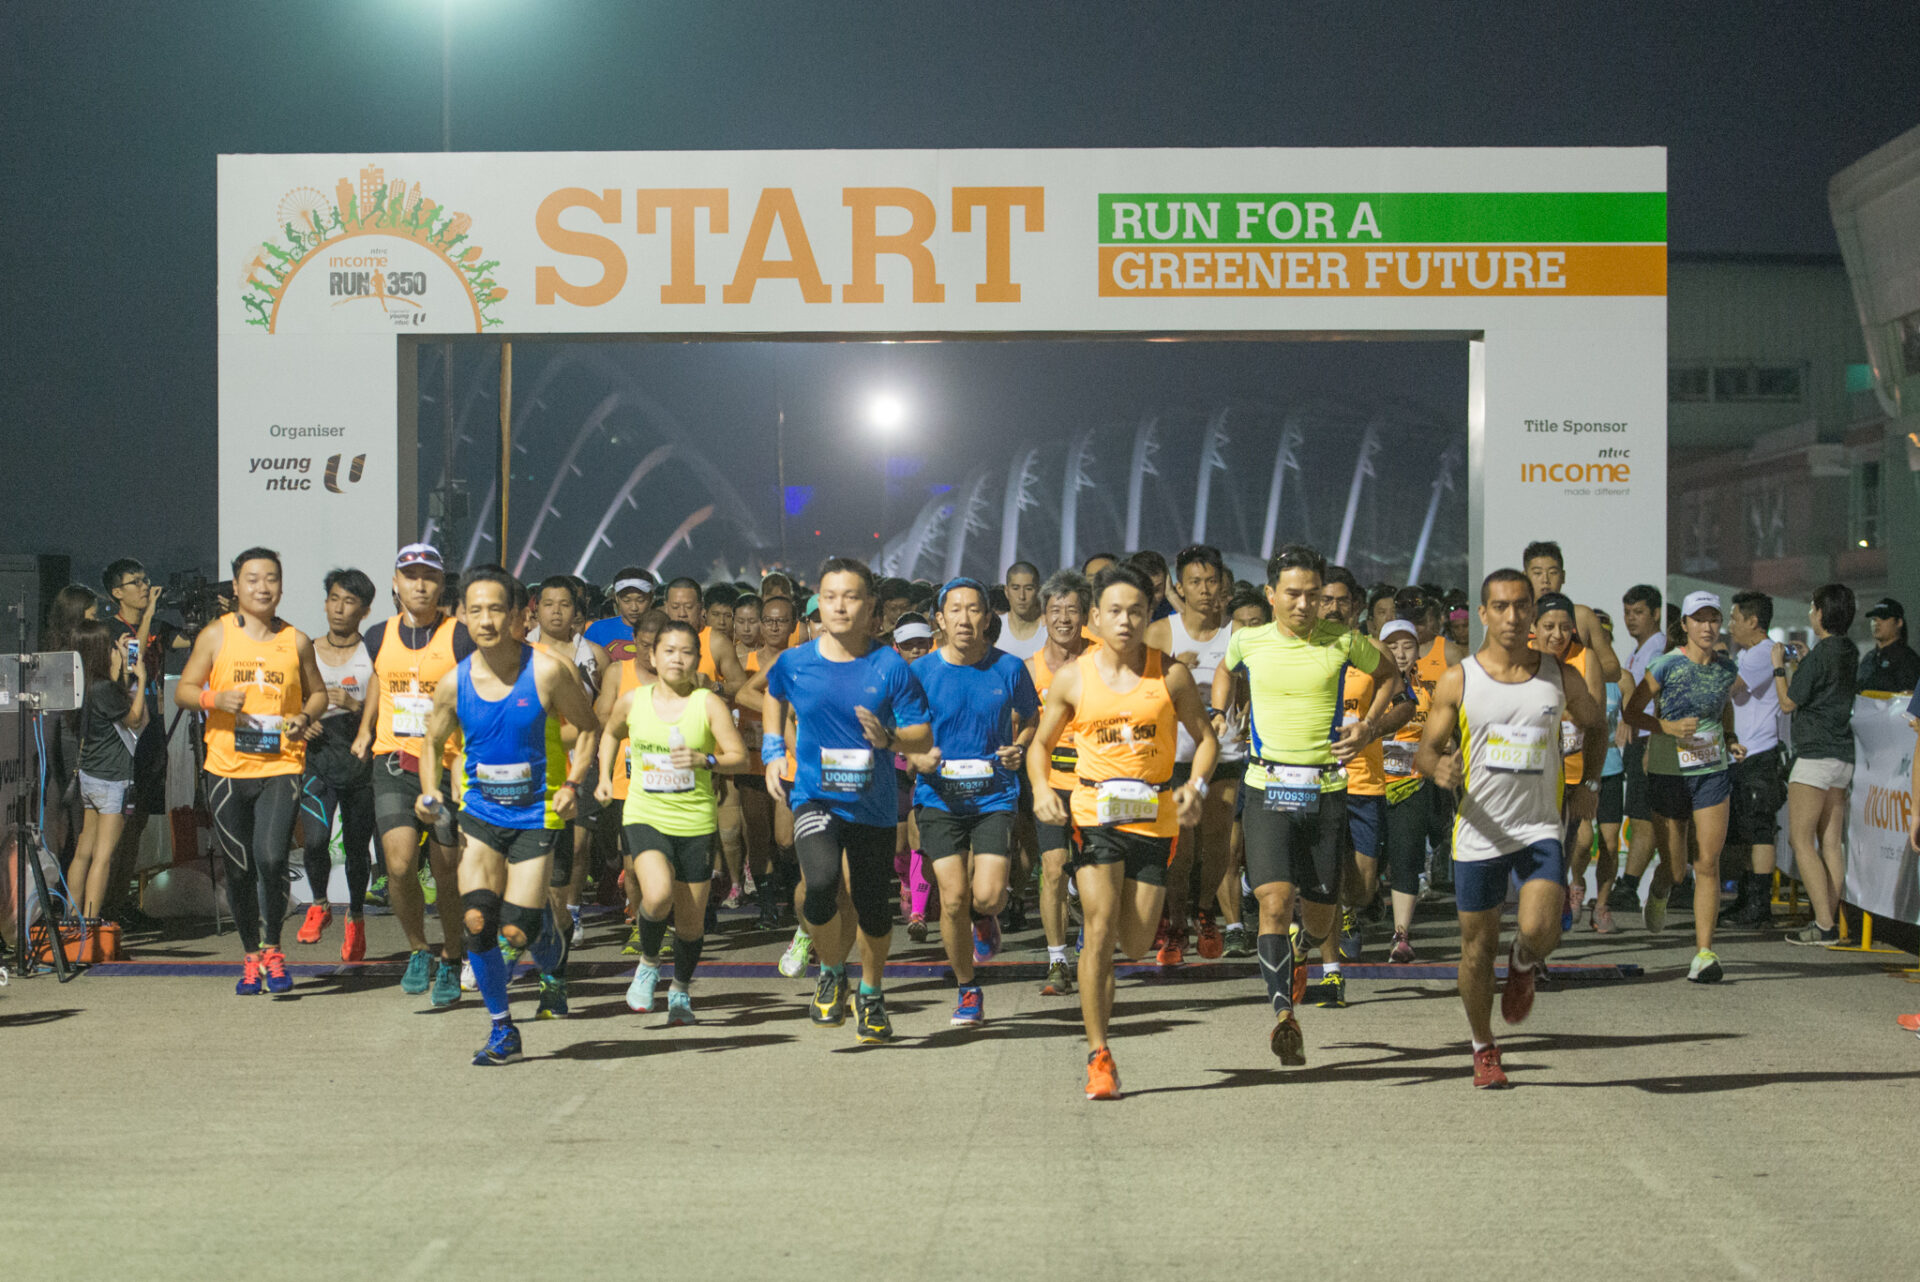 NTUC Income Run 350, Organised by Young NTUC_6